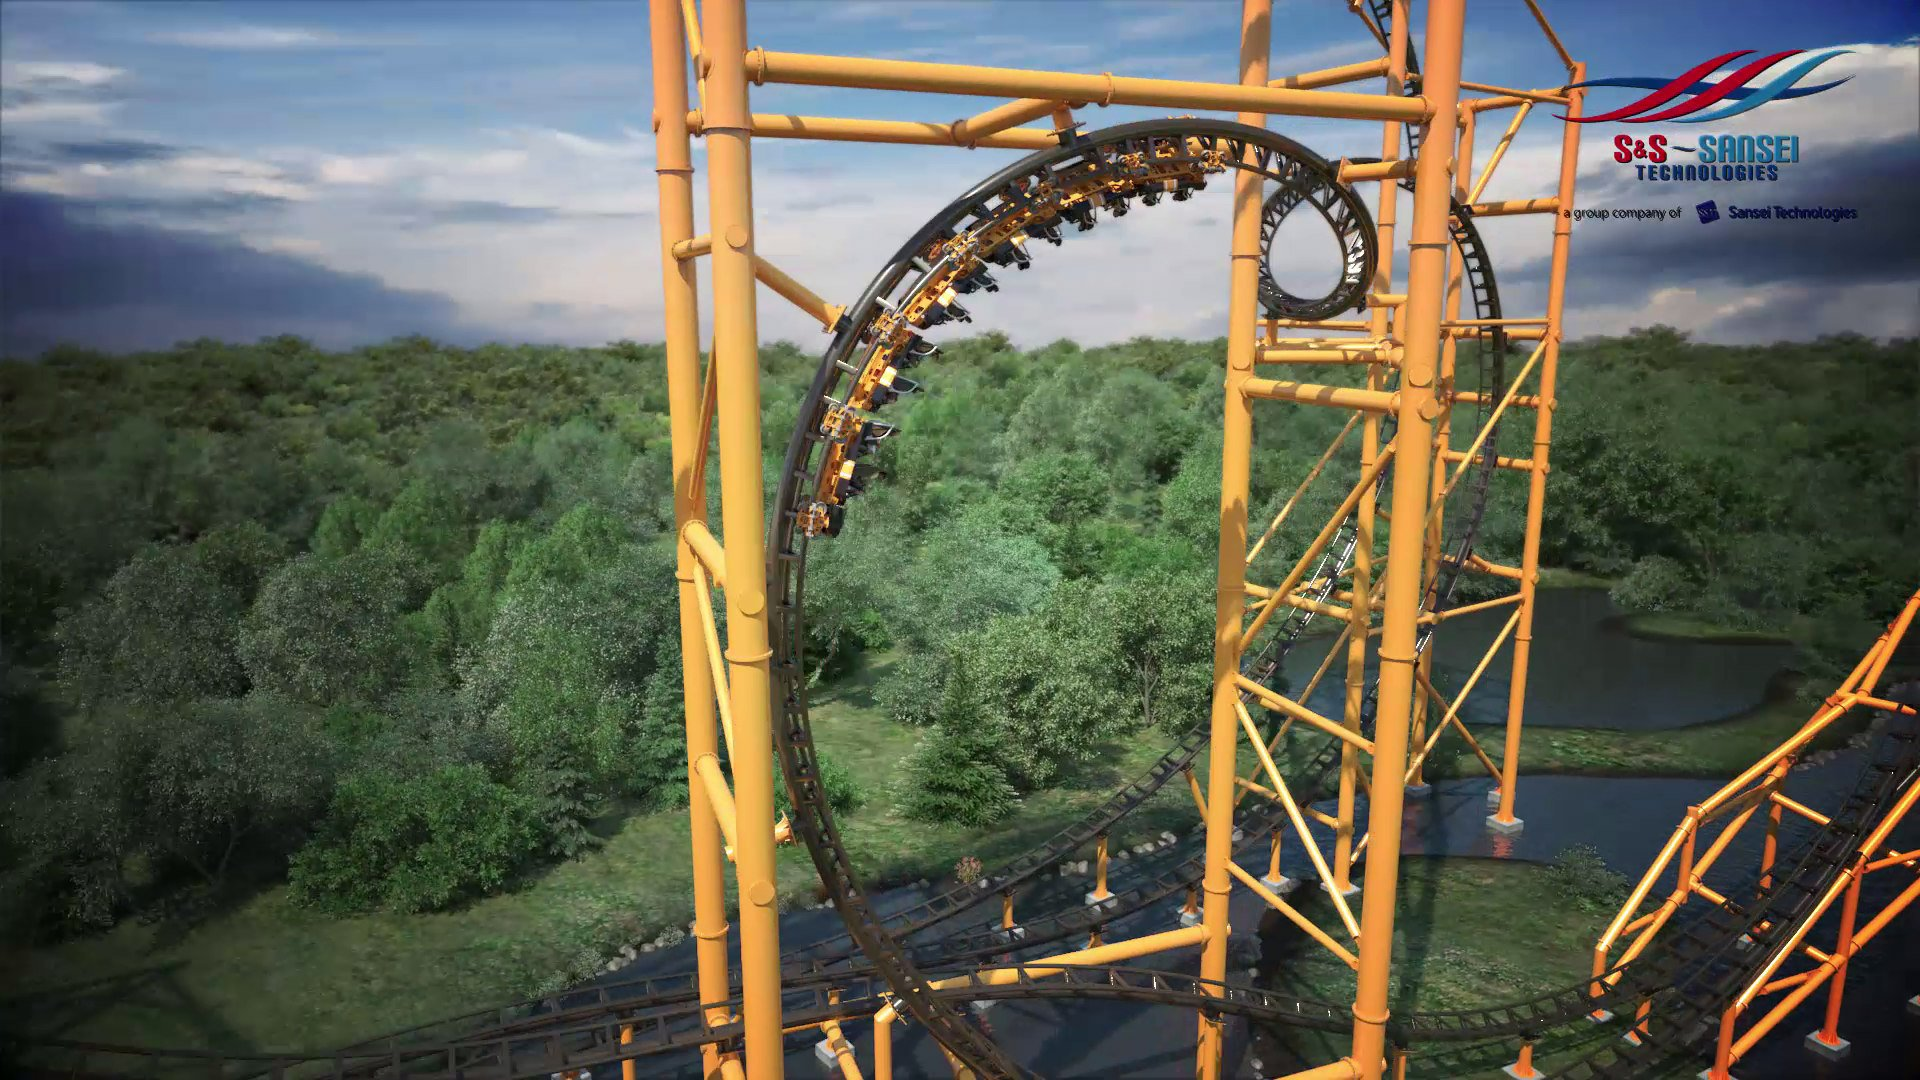 Steelers Country Kennywood Amusement Park 1920x1080